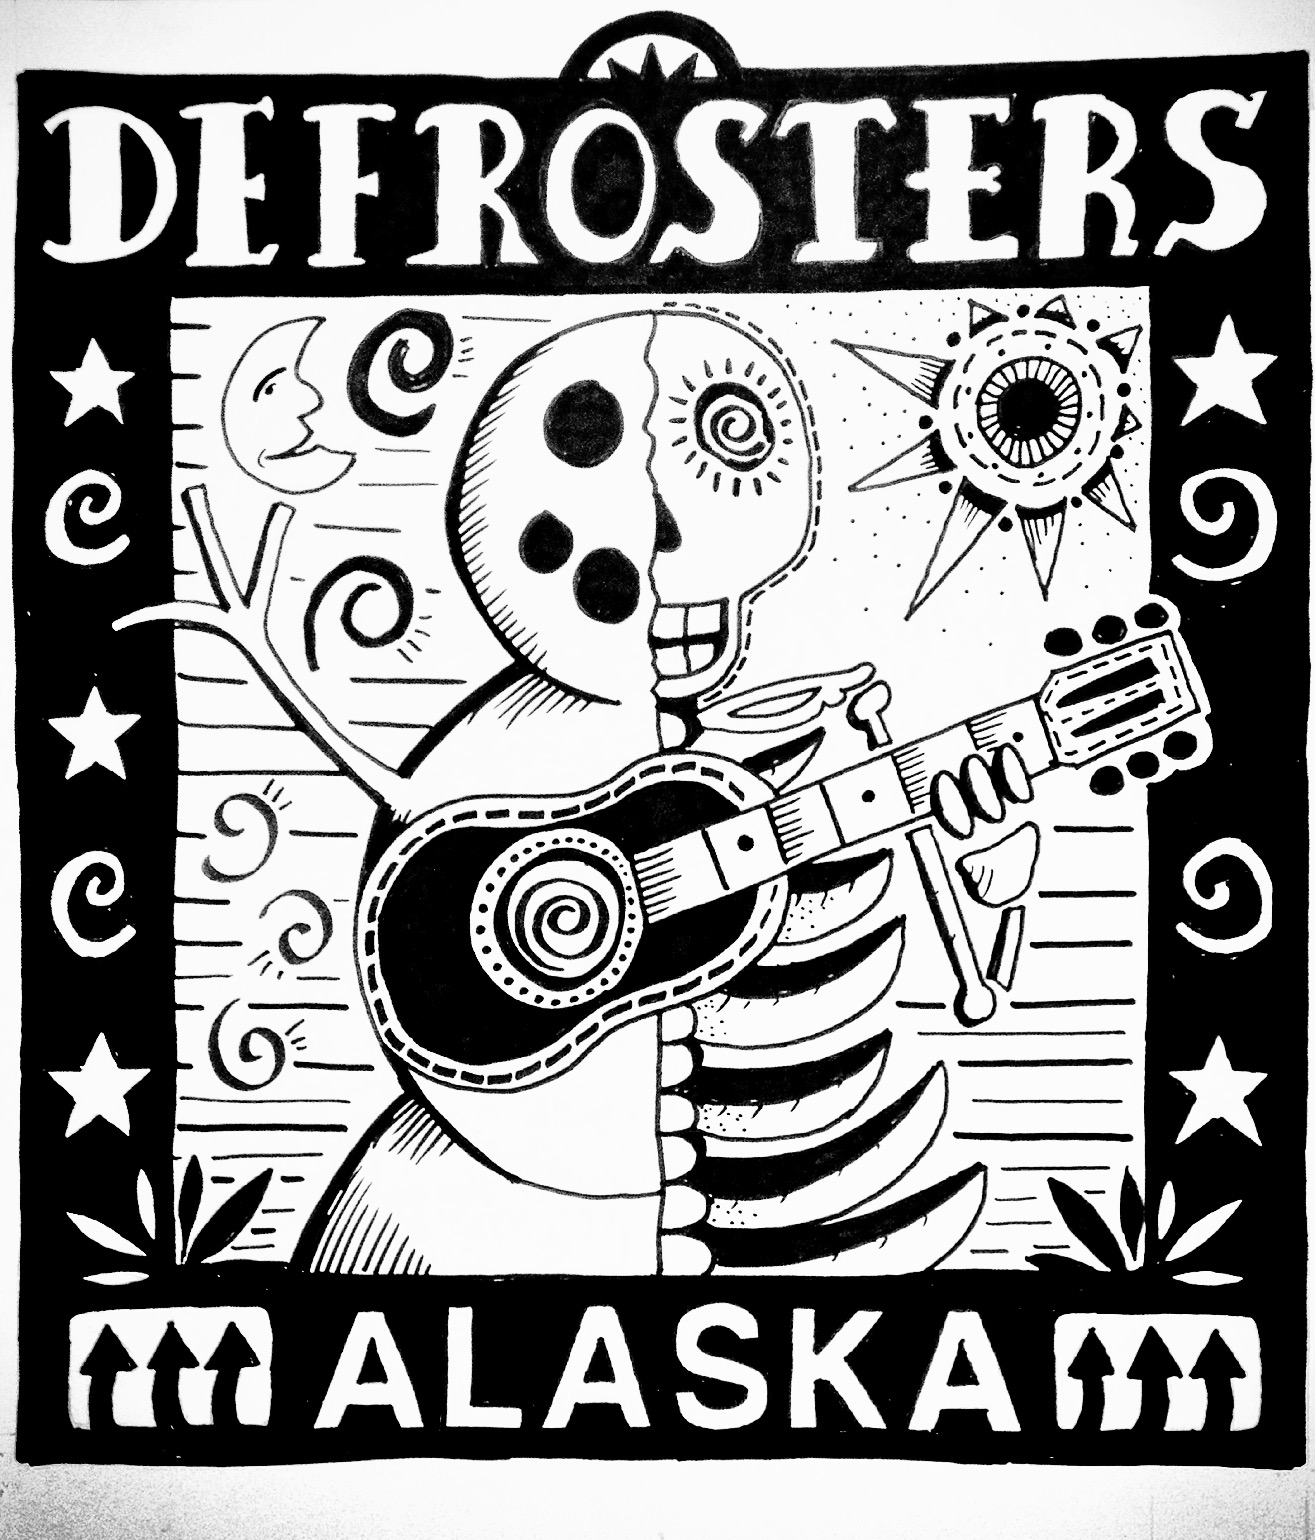 The Defrosters Original Artwork